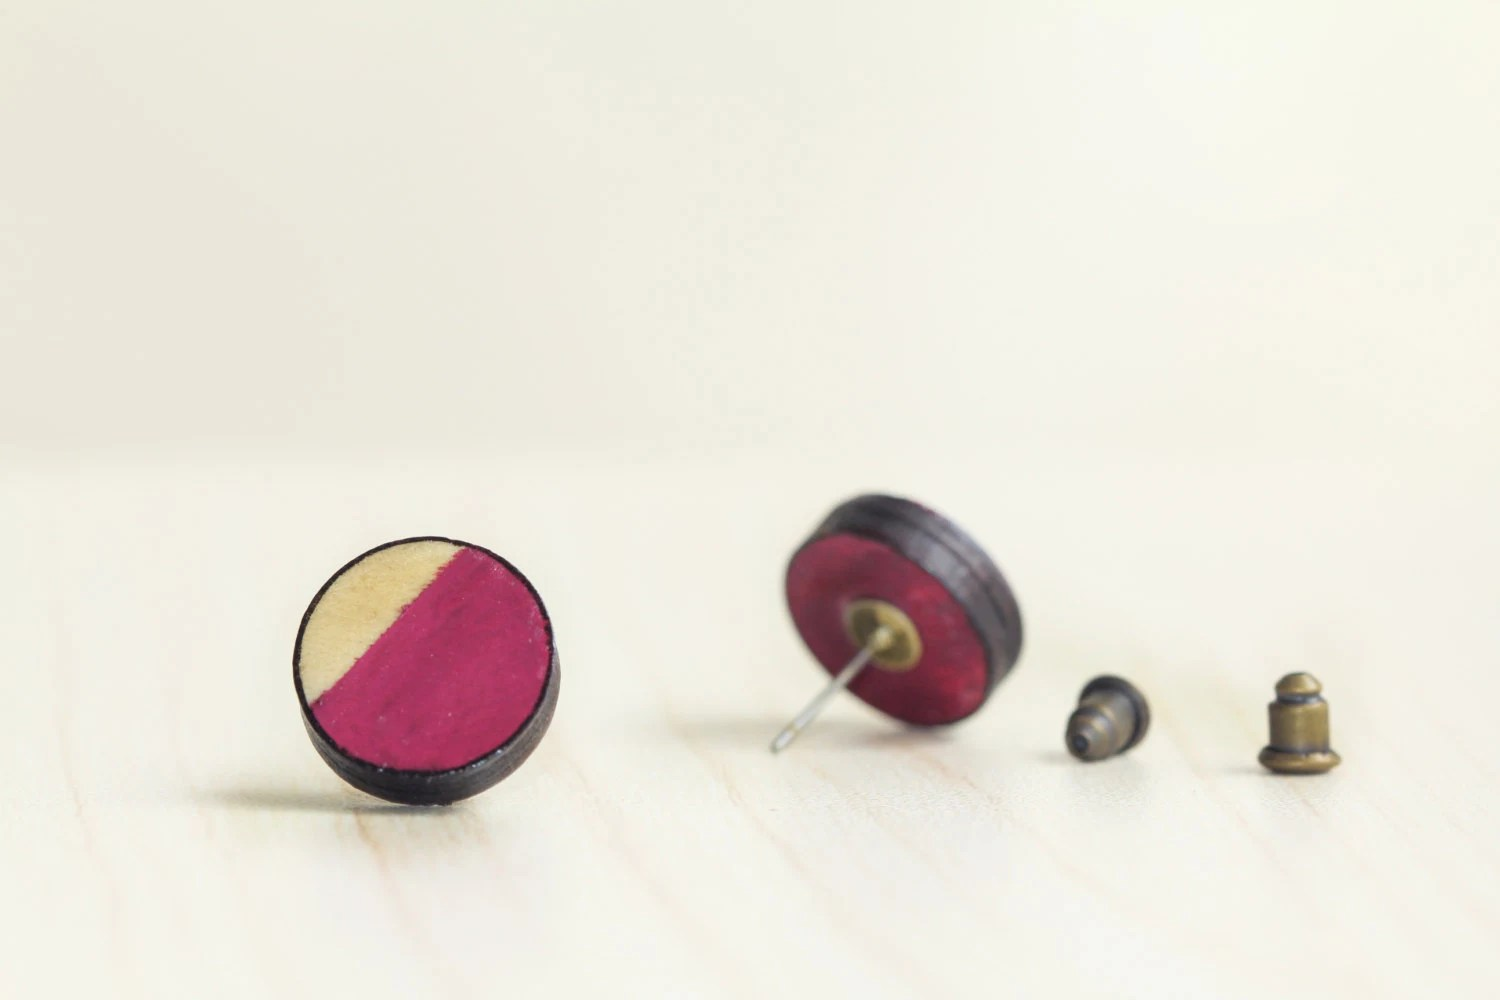 round ear studs . berry geometric earring jewellery . dipped . rustic cottage chic . mini small . magenta fuchsia purple red maroon - FreshfromtheKiln